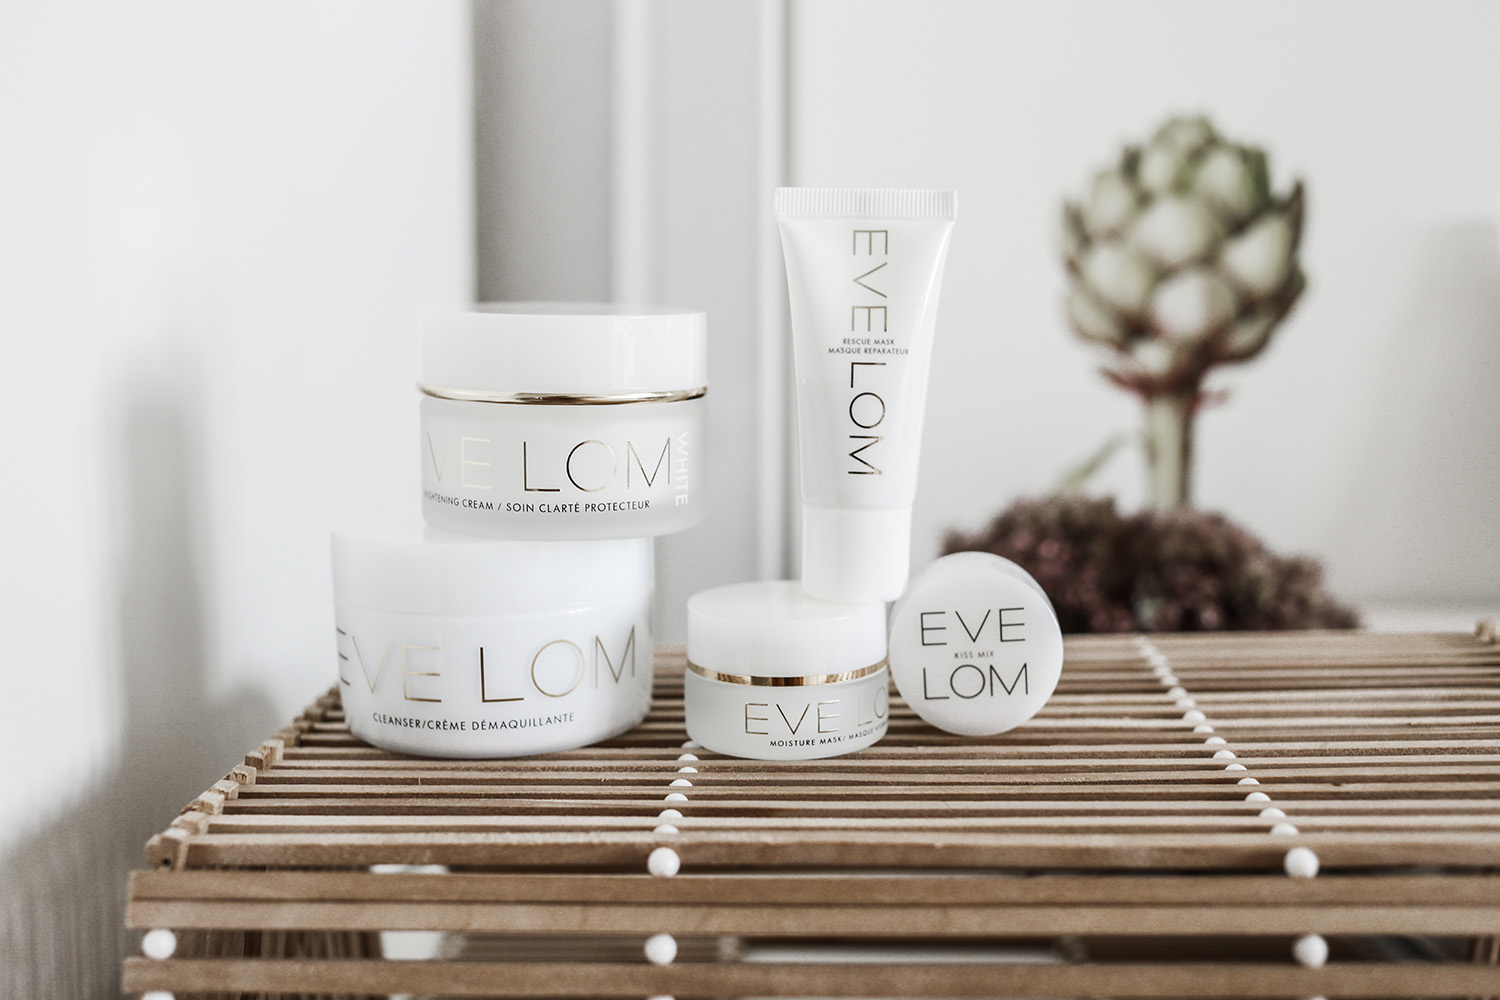 lookfantastic x EVE LOM Beauty Box Limited Edition